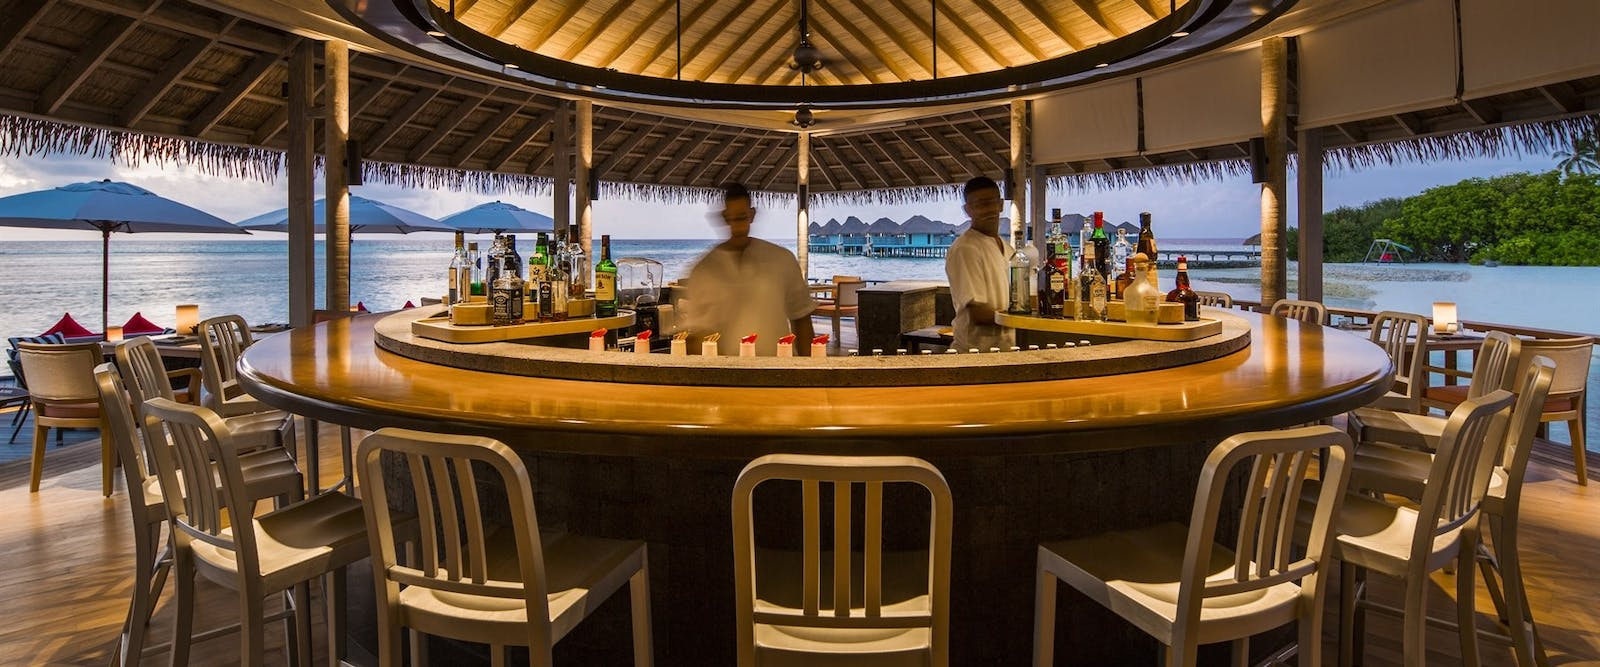 Tai Bar at COMO Maalifushi, Maldives, Indian Ocean